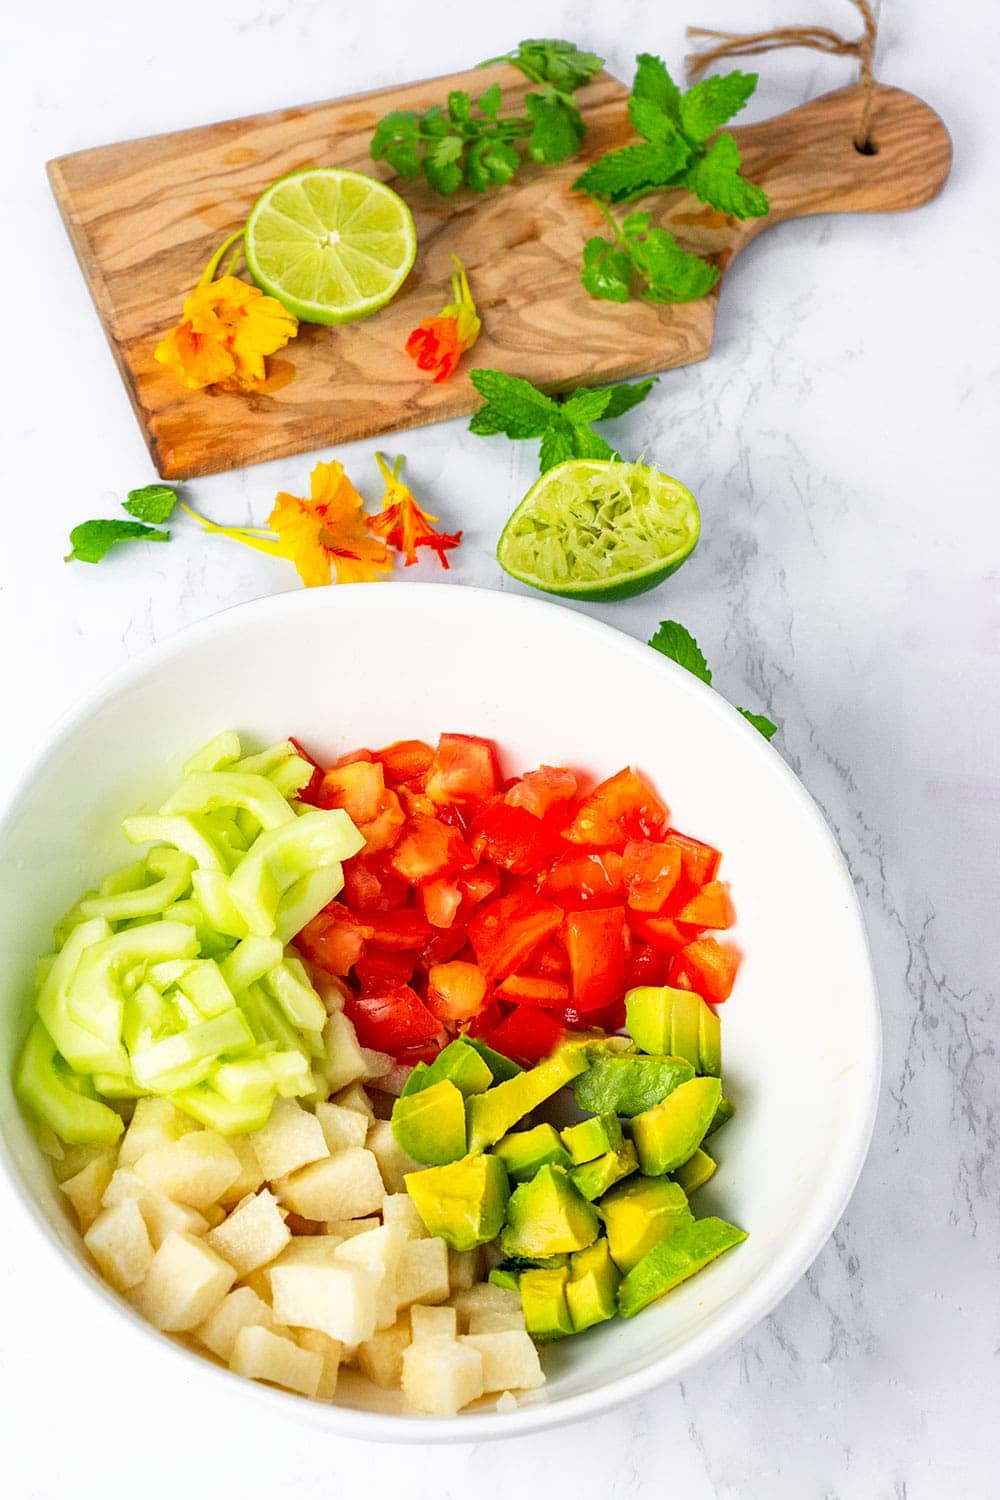 Jicama salad overlay with ingredients in a bowl, cubed jicama, tomato, cucumber and avocado with cutting board in the background with herbs